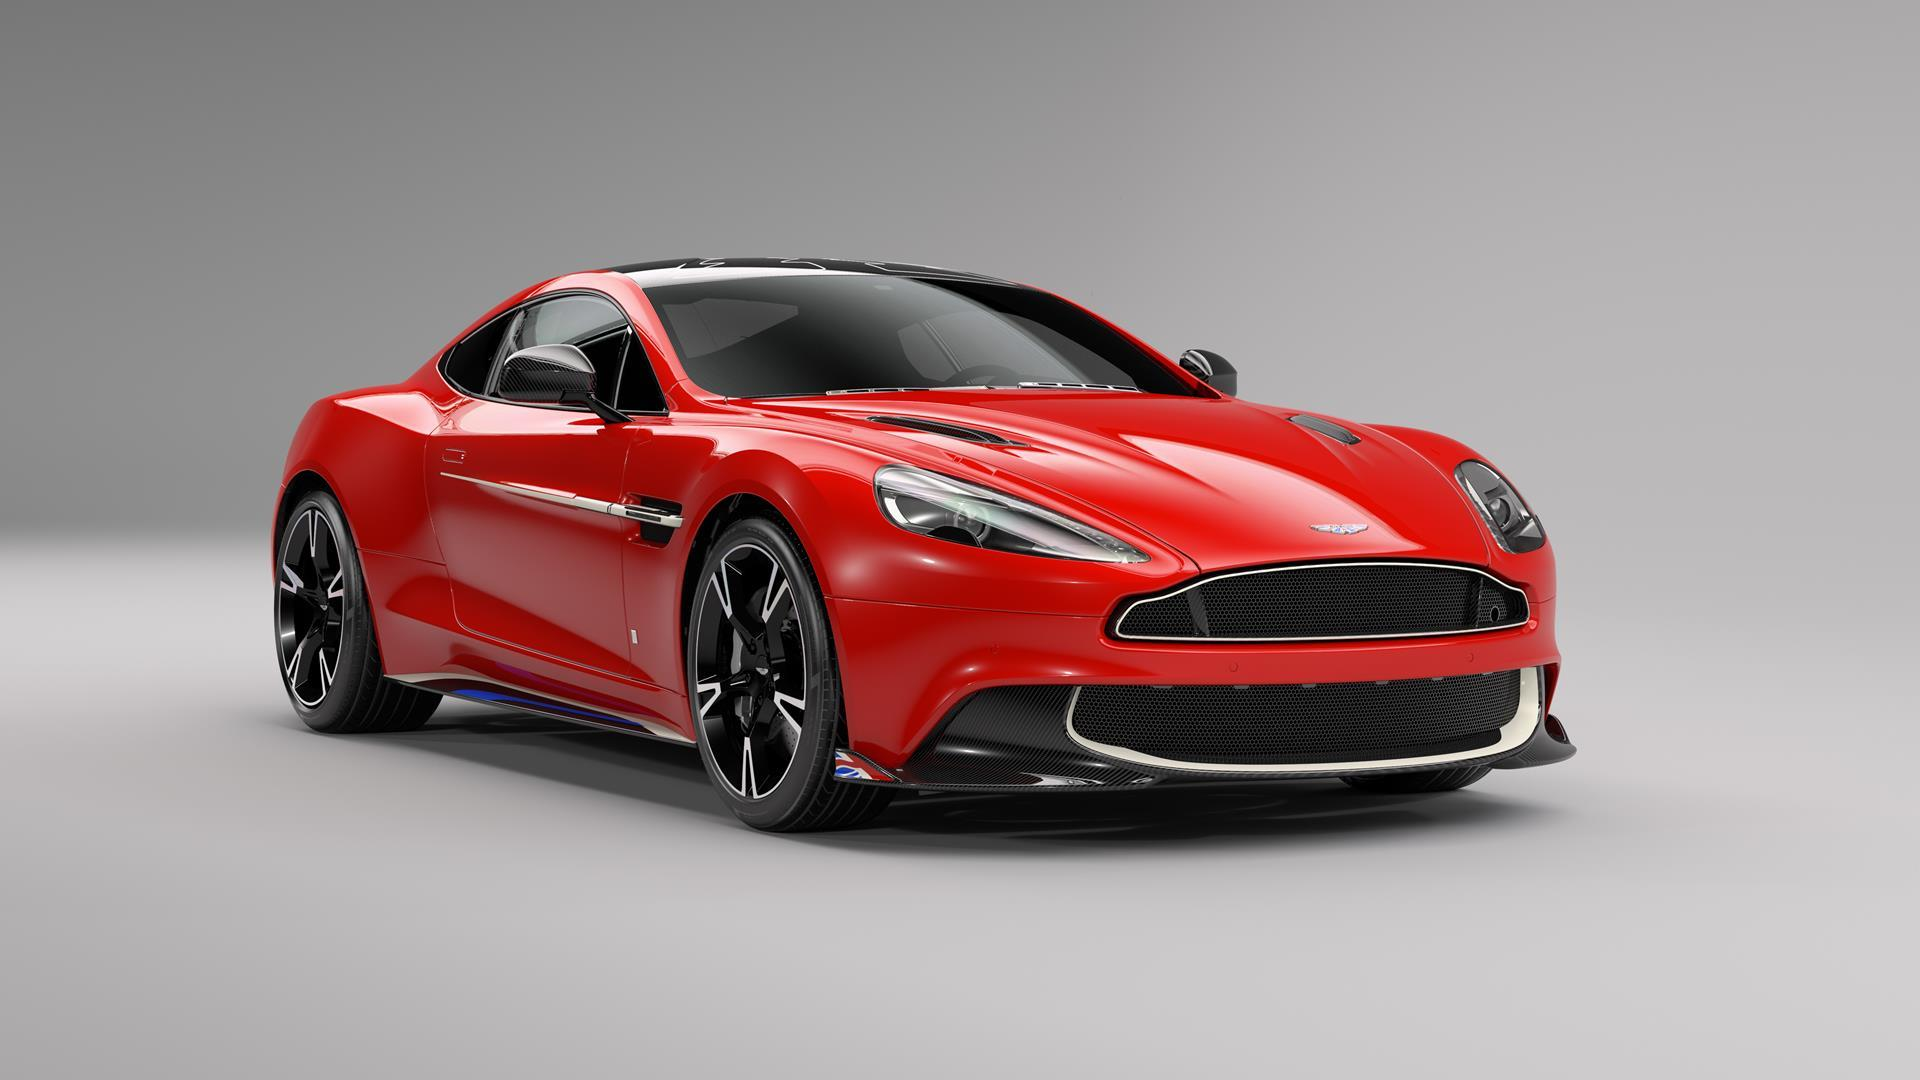 2017 Aston Martin Vanquish S Red Arrows Edition News And Information